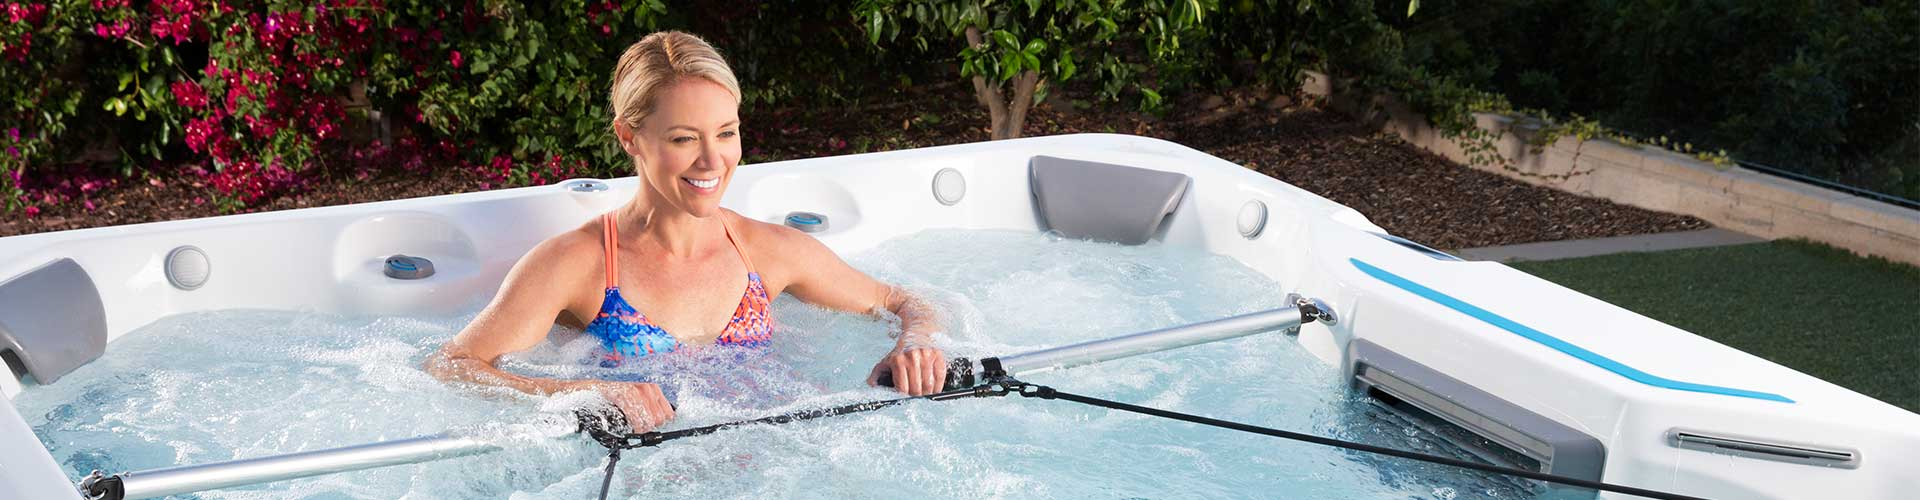 3 Great Things You Can Do in a Swim Spa, Endless Pools Store Milwaukee